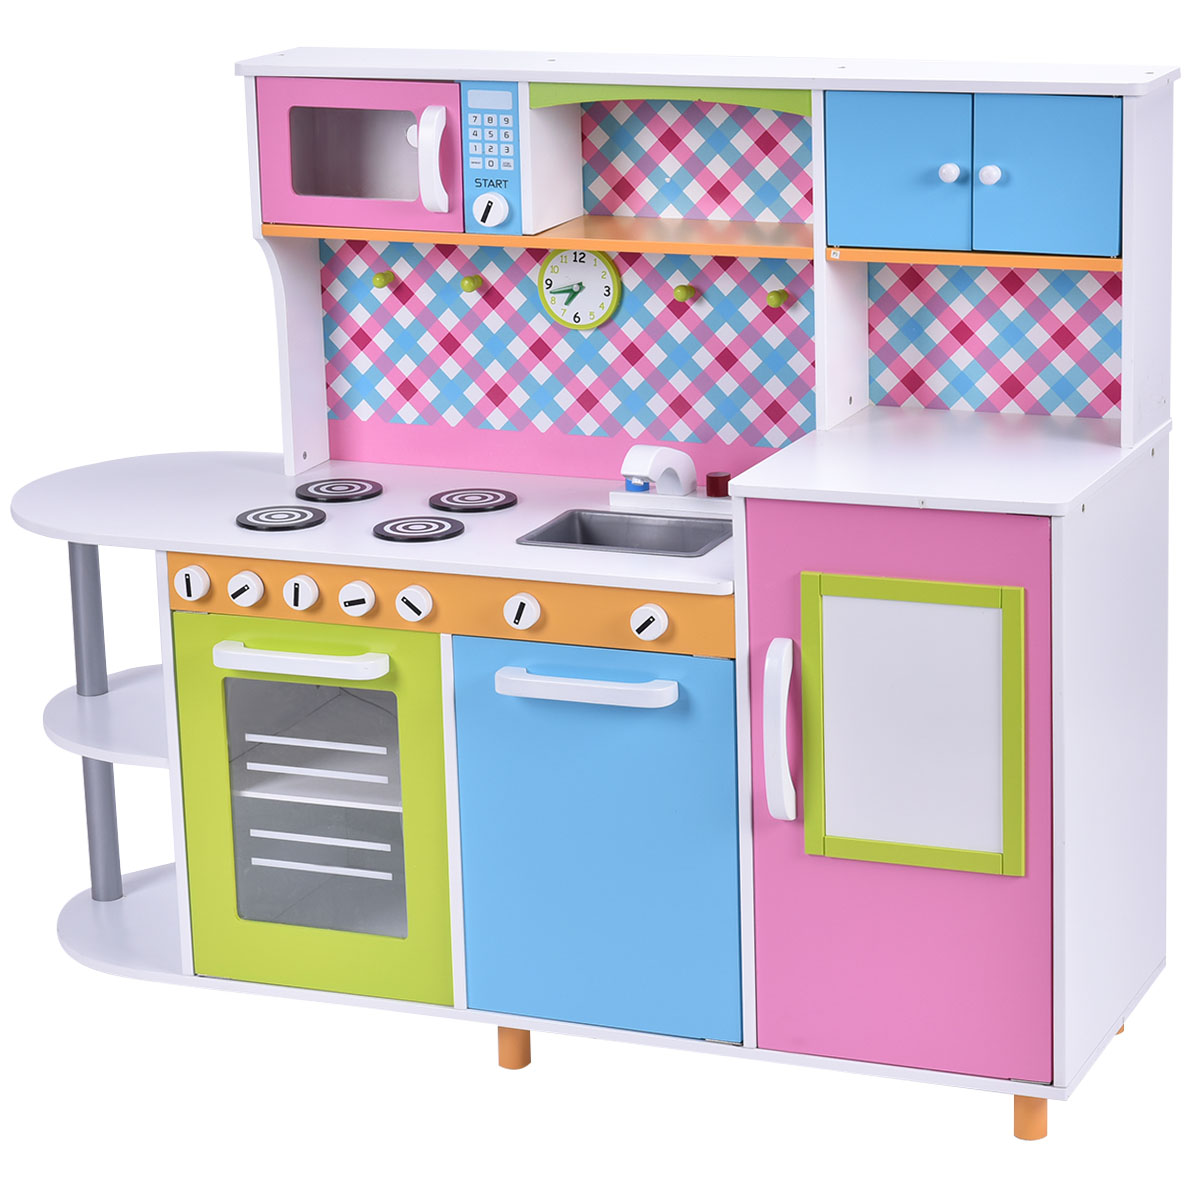 wood kitchen playsets prefab cabinets costway new toy kids cooking pretend play set toddler wooden playset gift walmart com